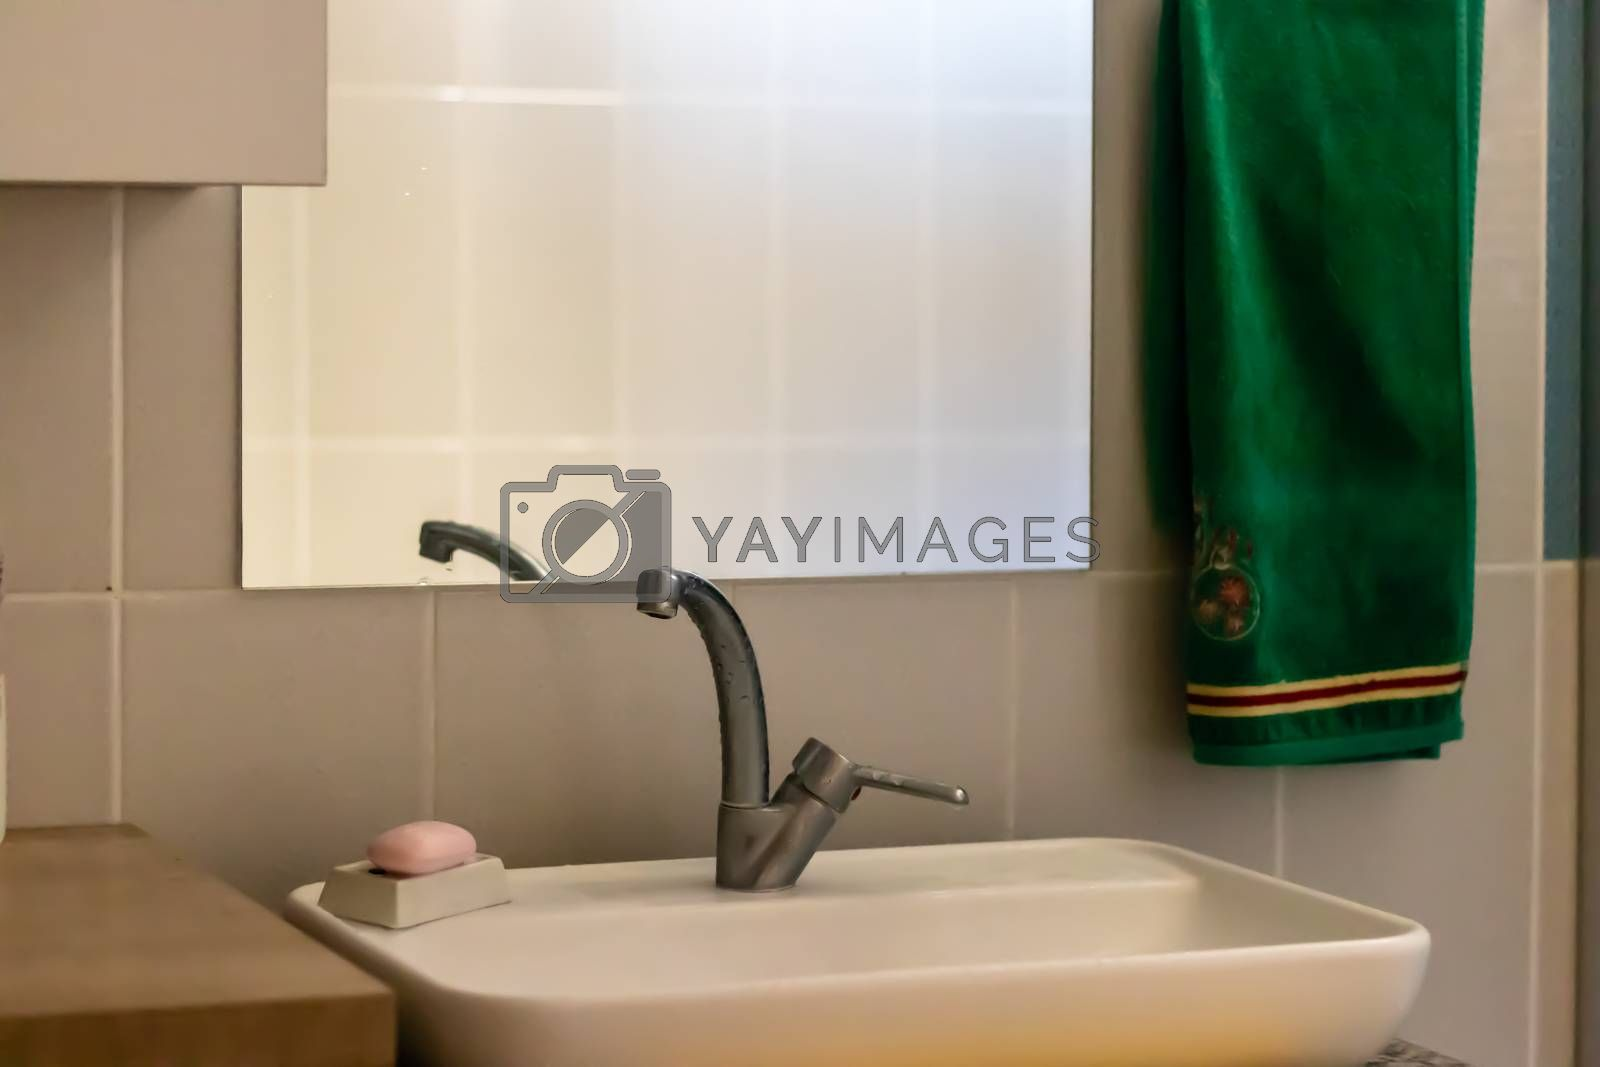 an interior shoot from a modern bathroom - there is sink and green towel. photo has taken at izmir/turkey.